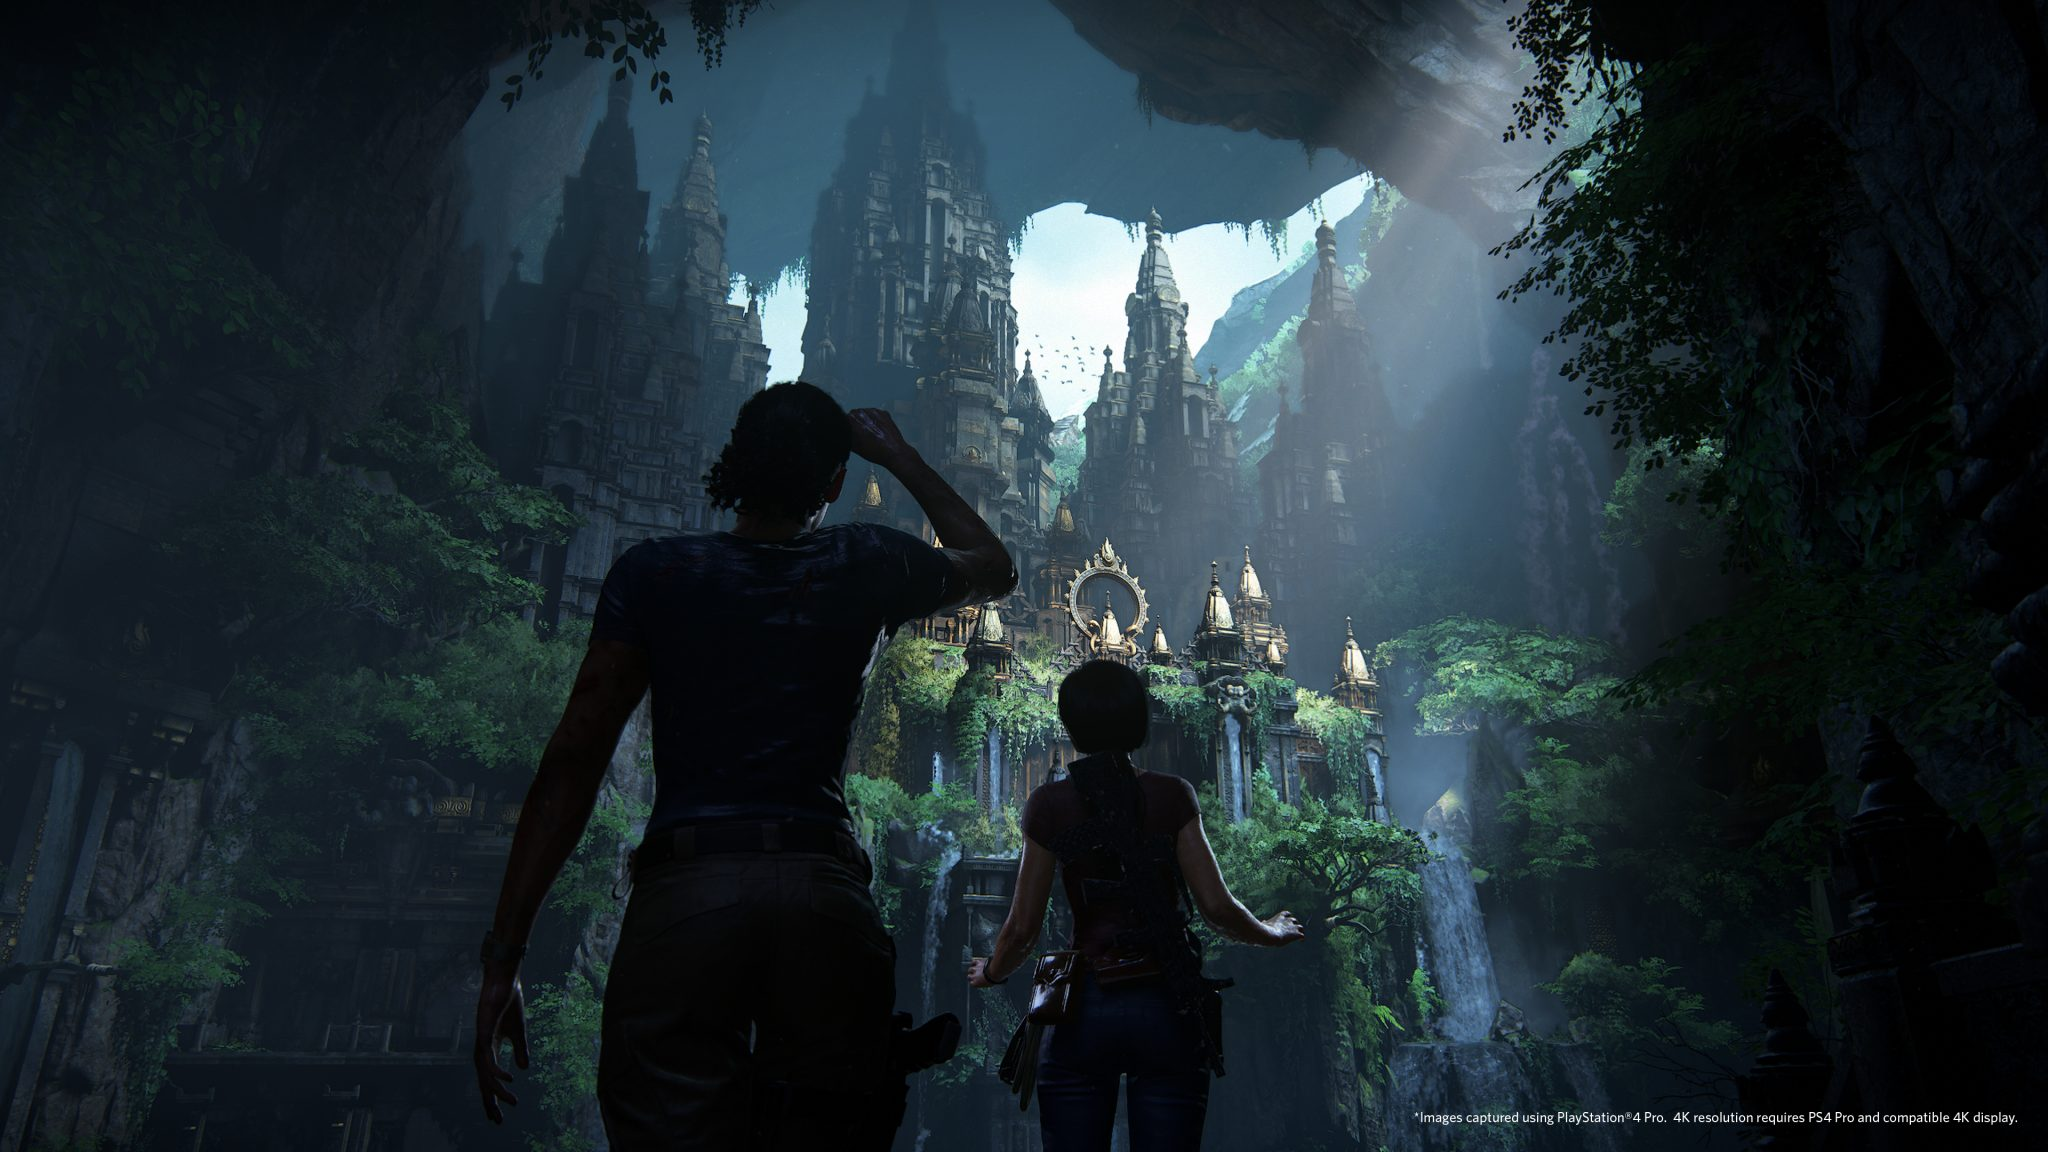 Uncharted: The Lost Legacy 4K PS4 Pro Screens Look Like ...